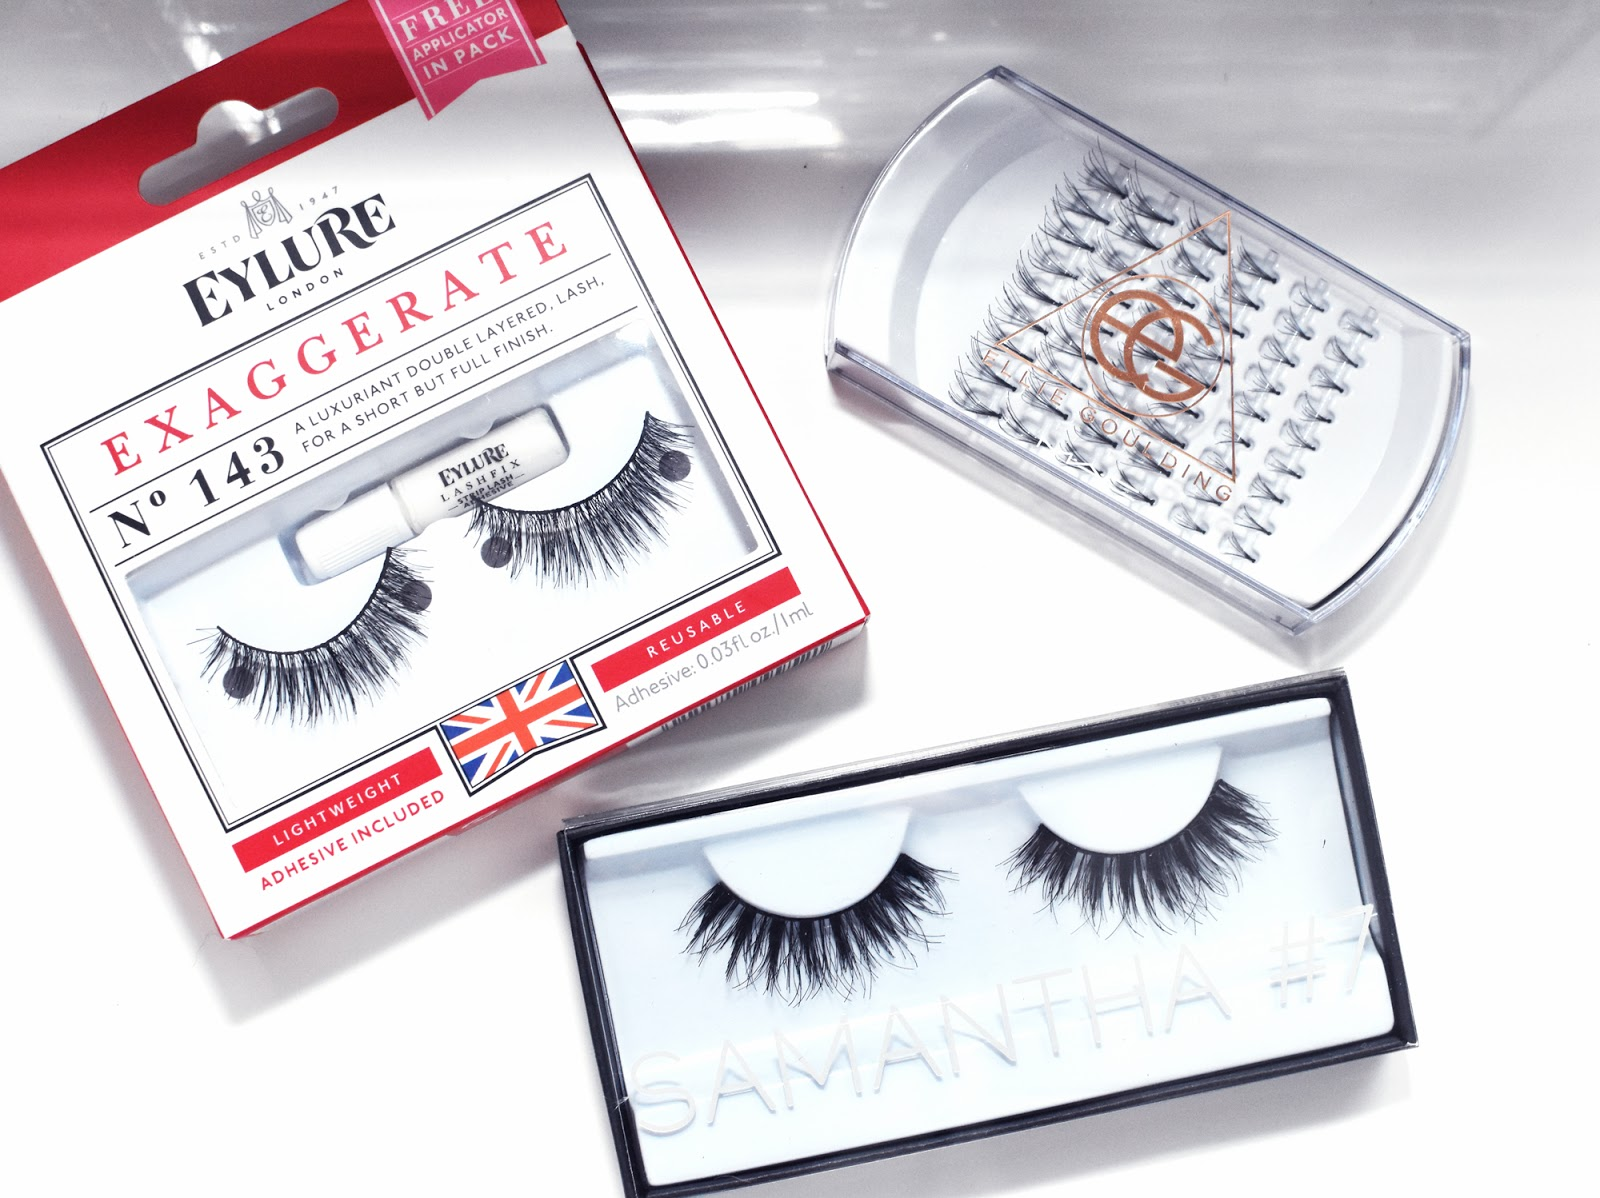 An assortment of false eyelashes from Eylure, Huda Beauty, and Ellie Goulding for MAC